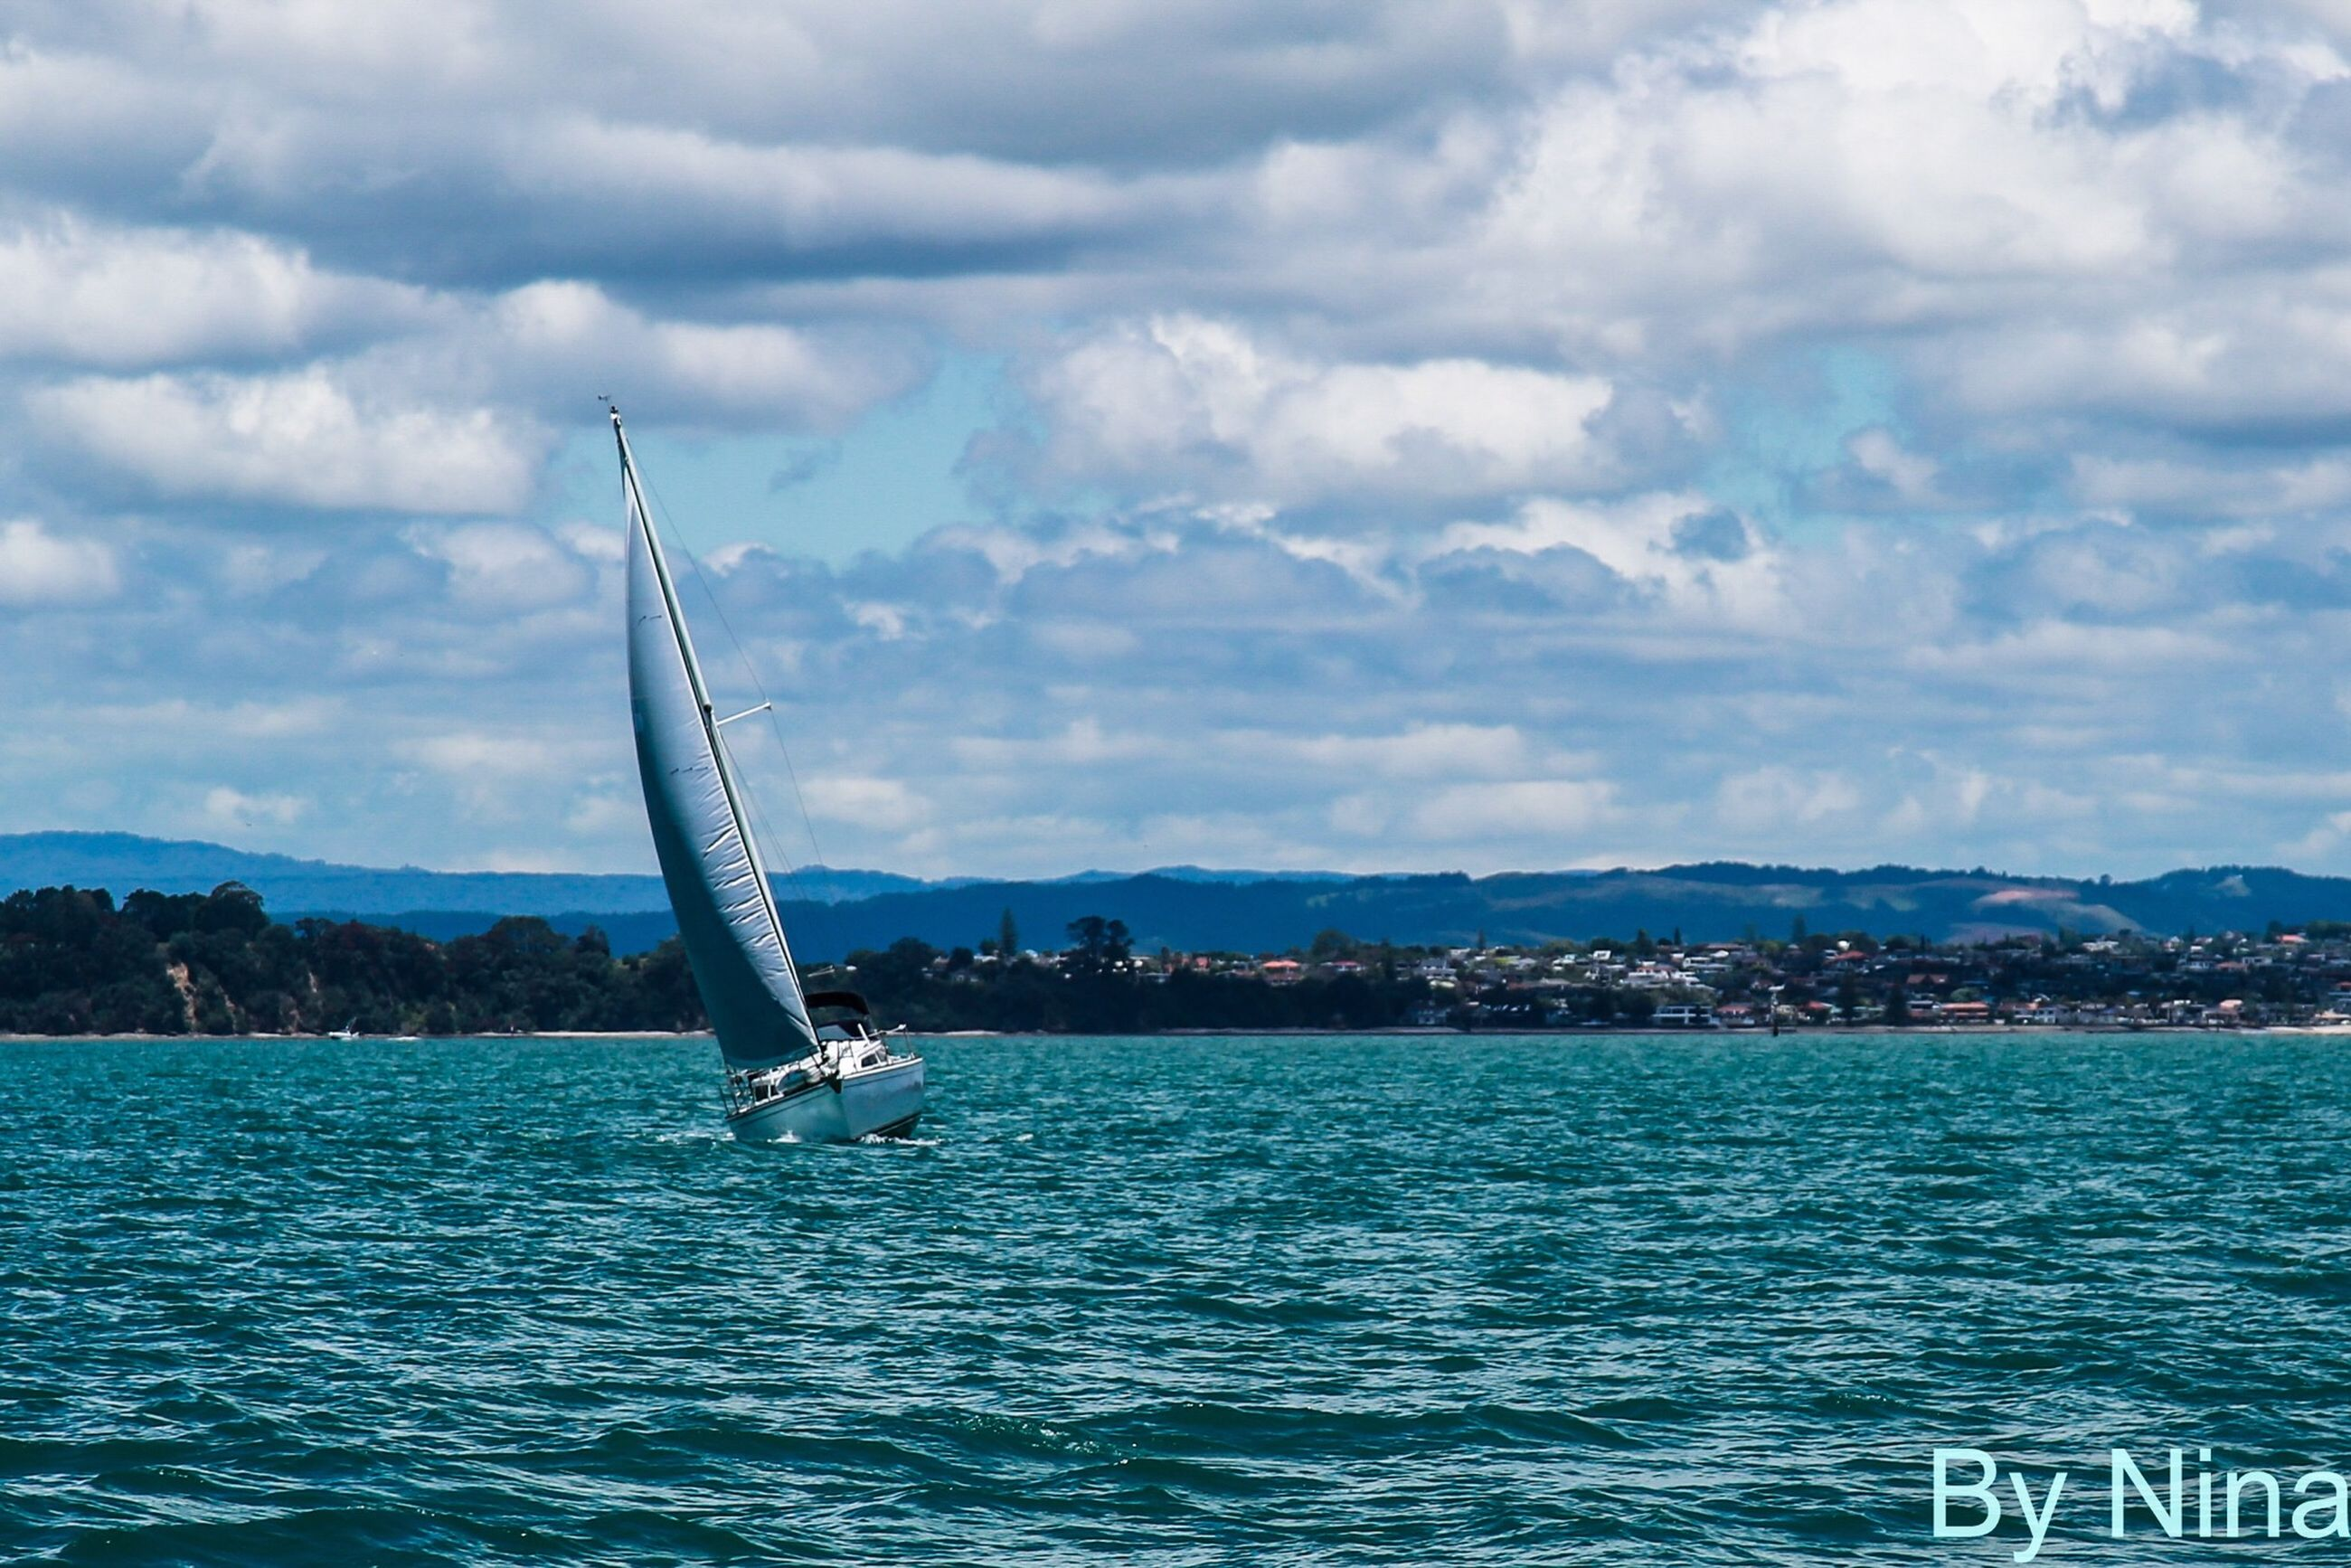 water, waterfront, sea, nautical vessel, sky, transportation, cloud - sky, mountain, mode of transport, boat, rippled, sailboat, sailing, cloud, nature, tranquility, scenics, tranquil scene, cloudy, beauty in nature